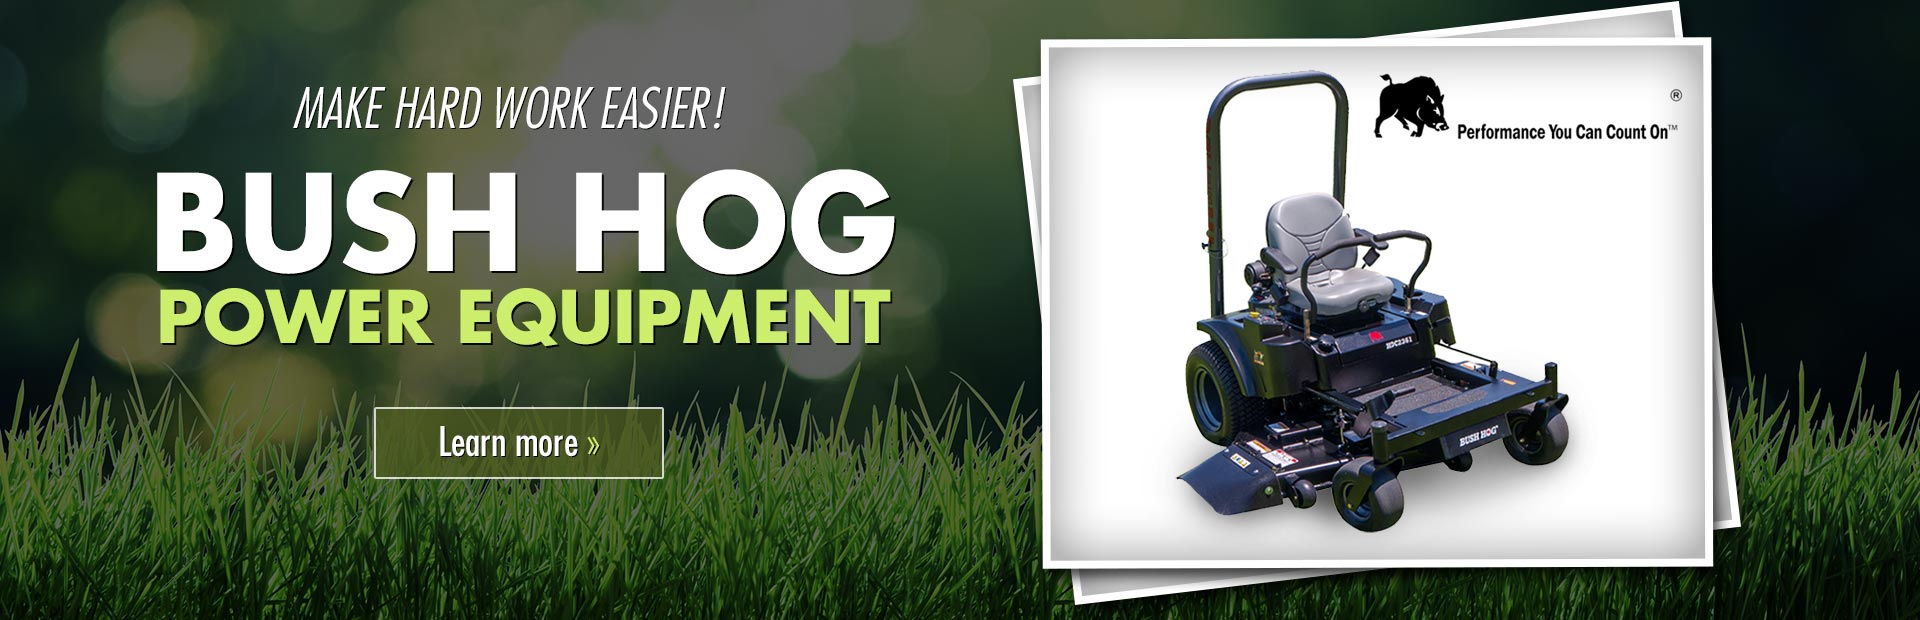 Bush Hog Power Equipment: Click here to view the models.